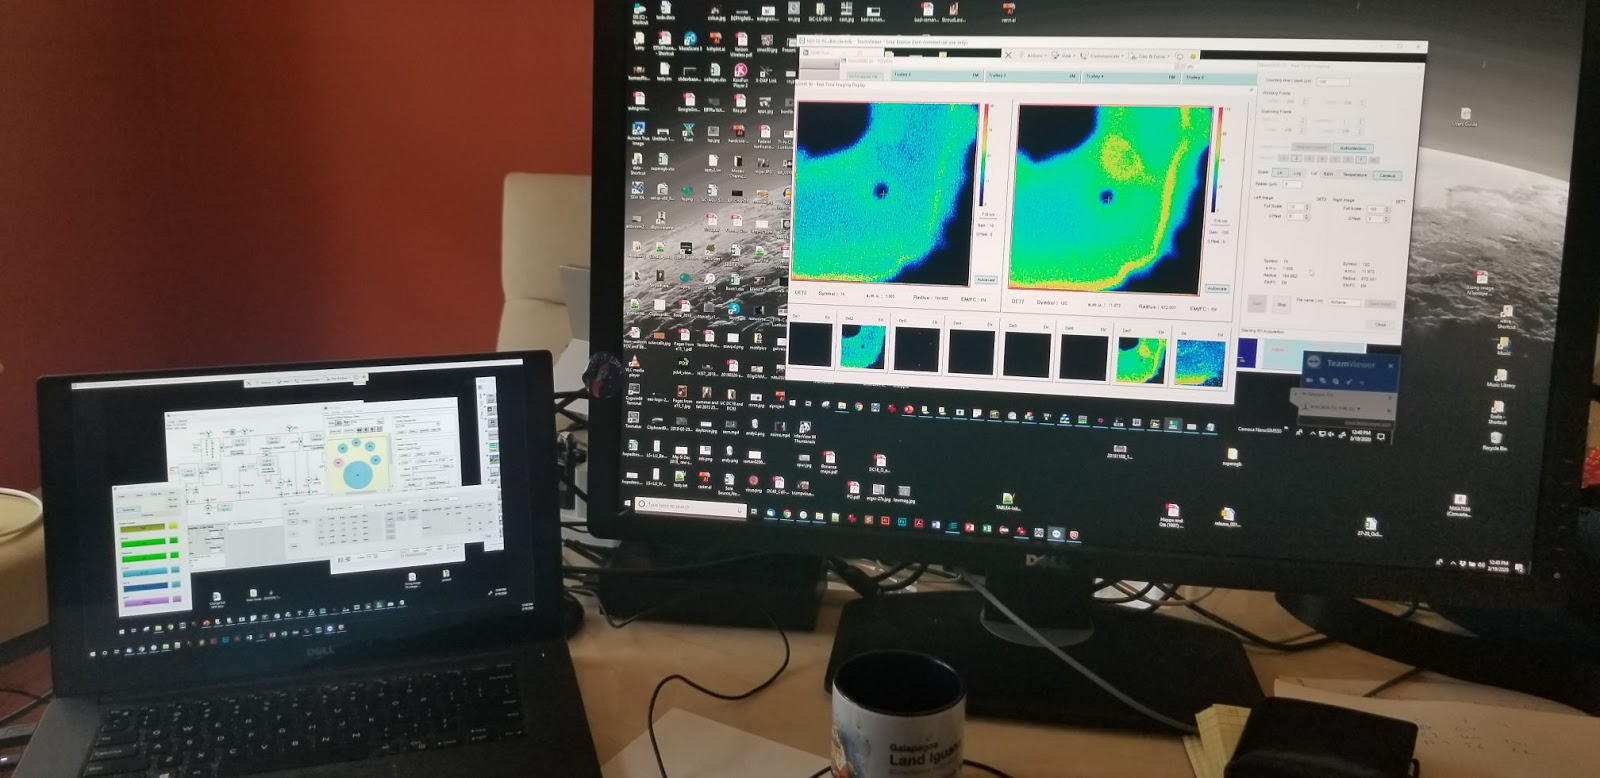 Larry Nittler Collects nonSIMS data from home